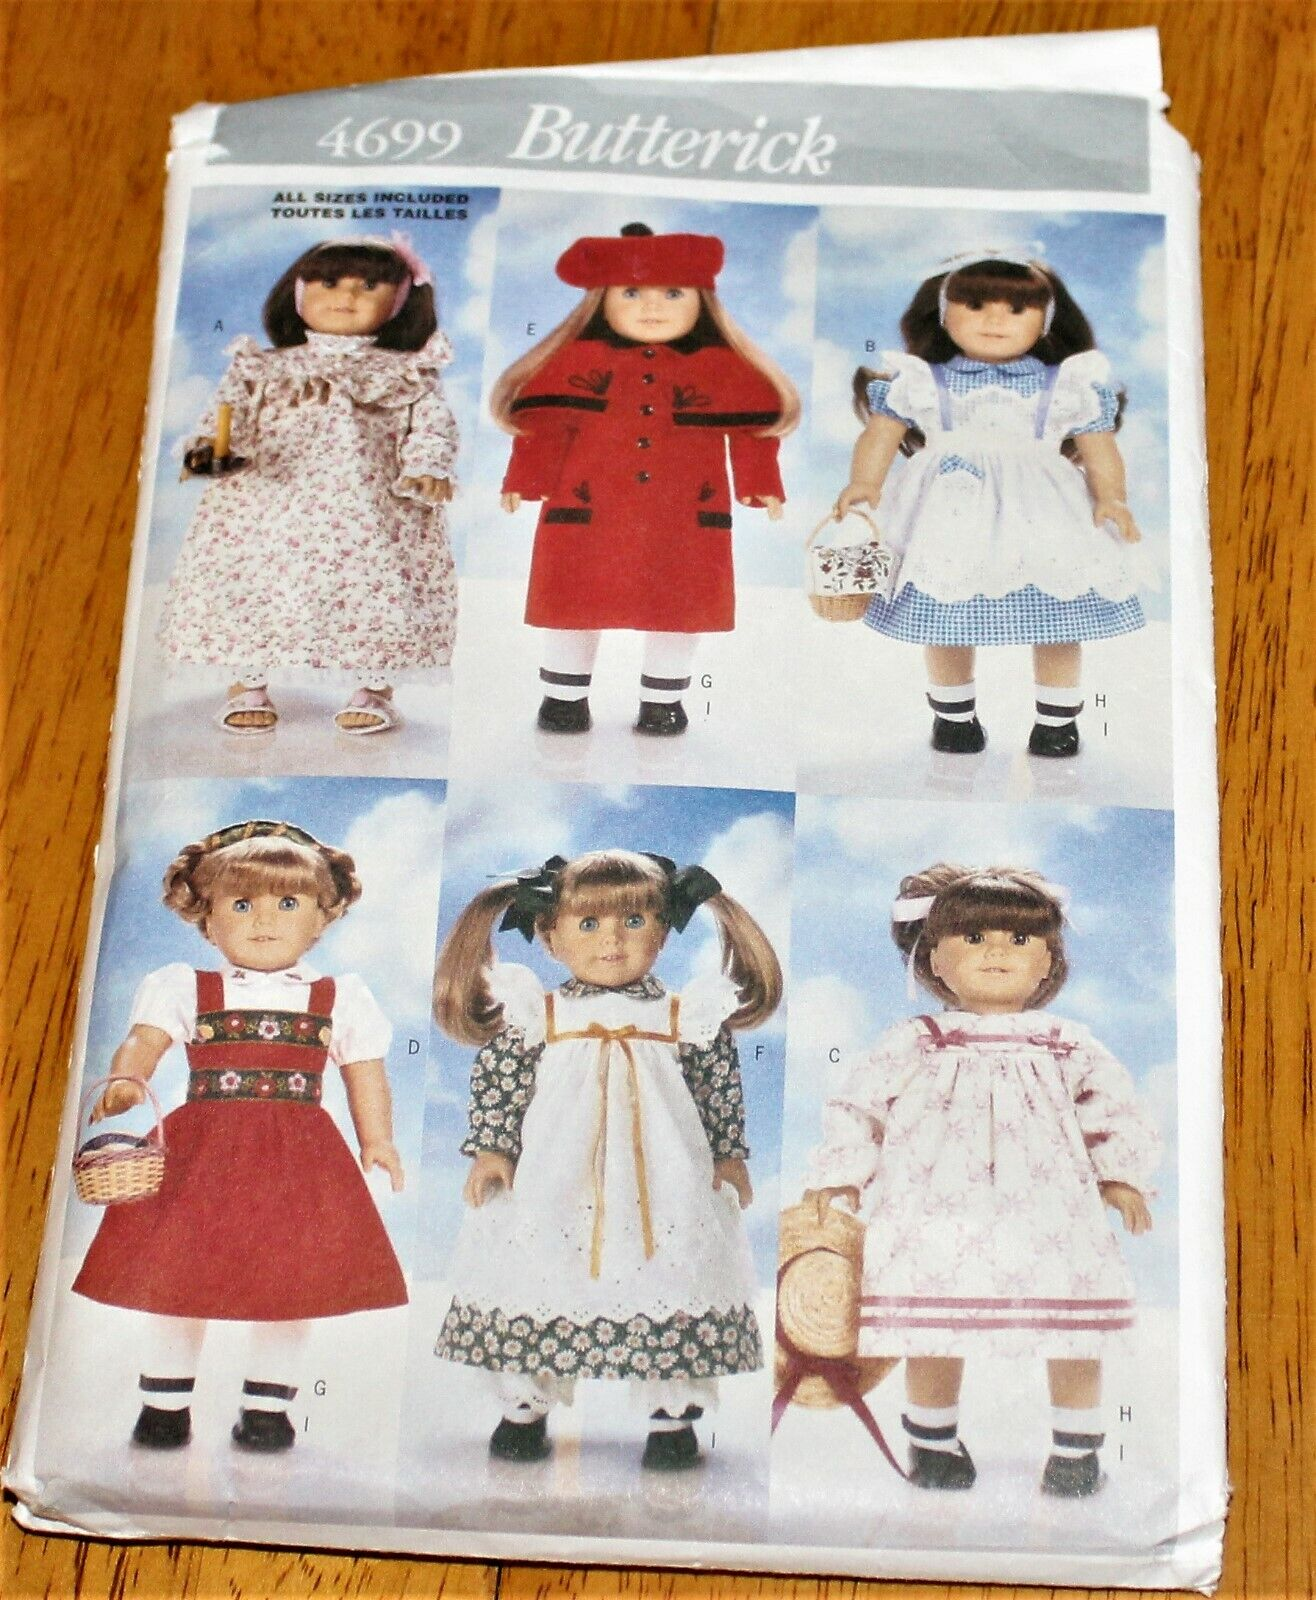 Butterick Pattern 4699 - CLOTHES WARDROBE FOR 18 DOLLS - Pre-cut 6 Designs Guc - $2.99